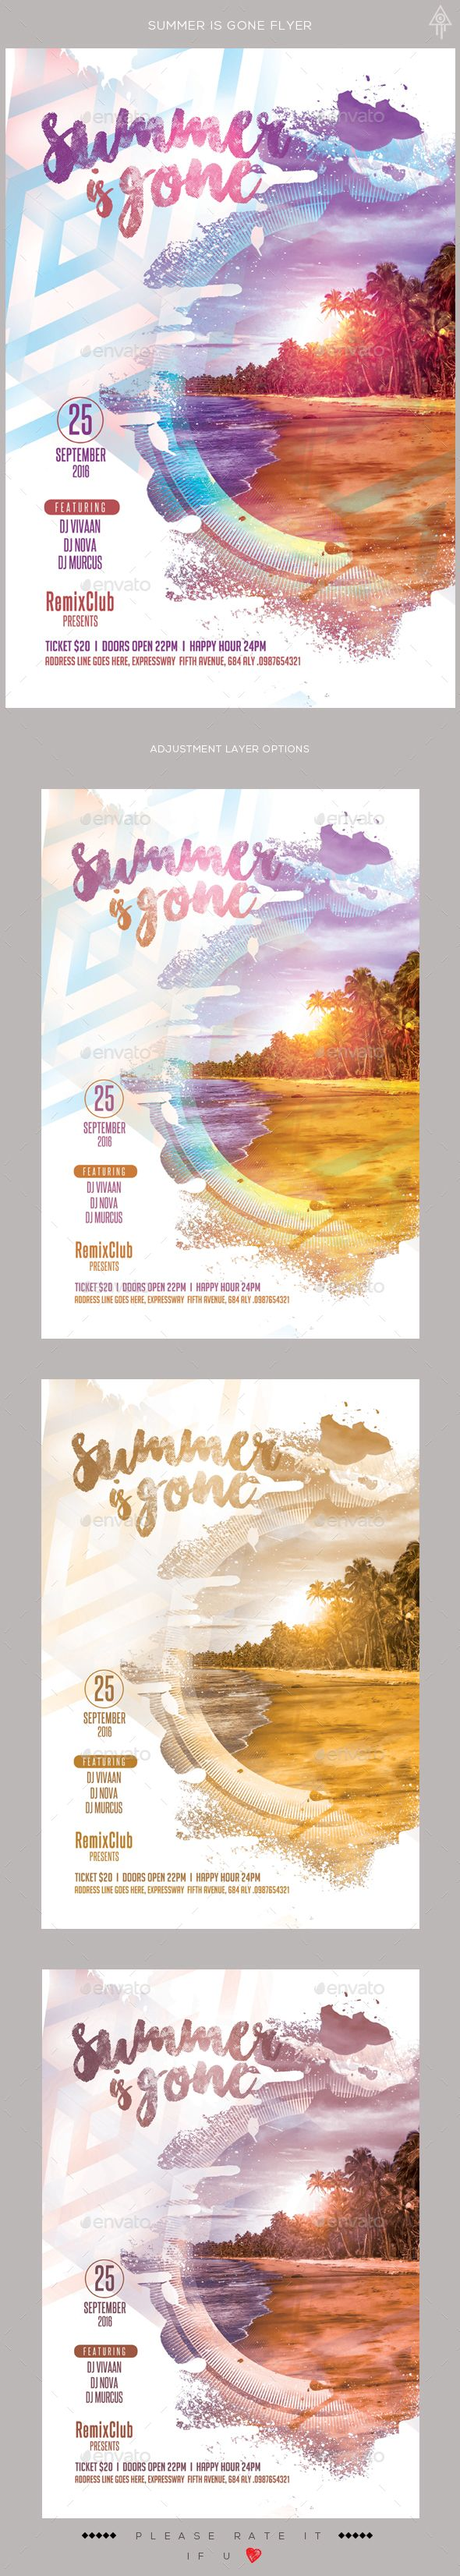 Quick poster design - Summer Is Gone Flyer Event Poster Designpsd